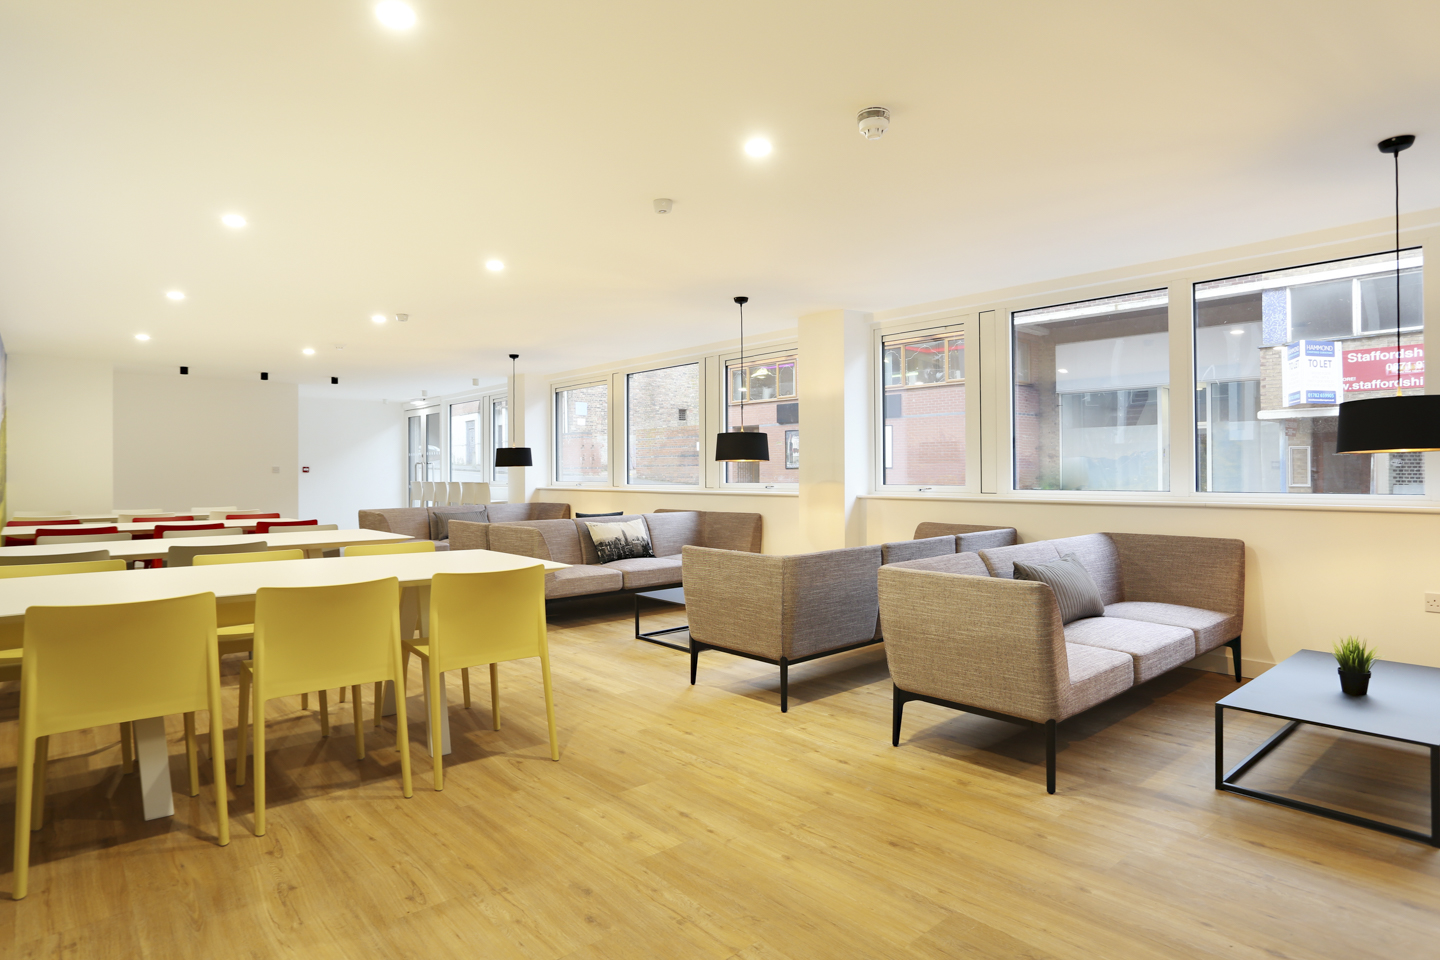 Communal area for students in Keele house